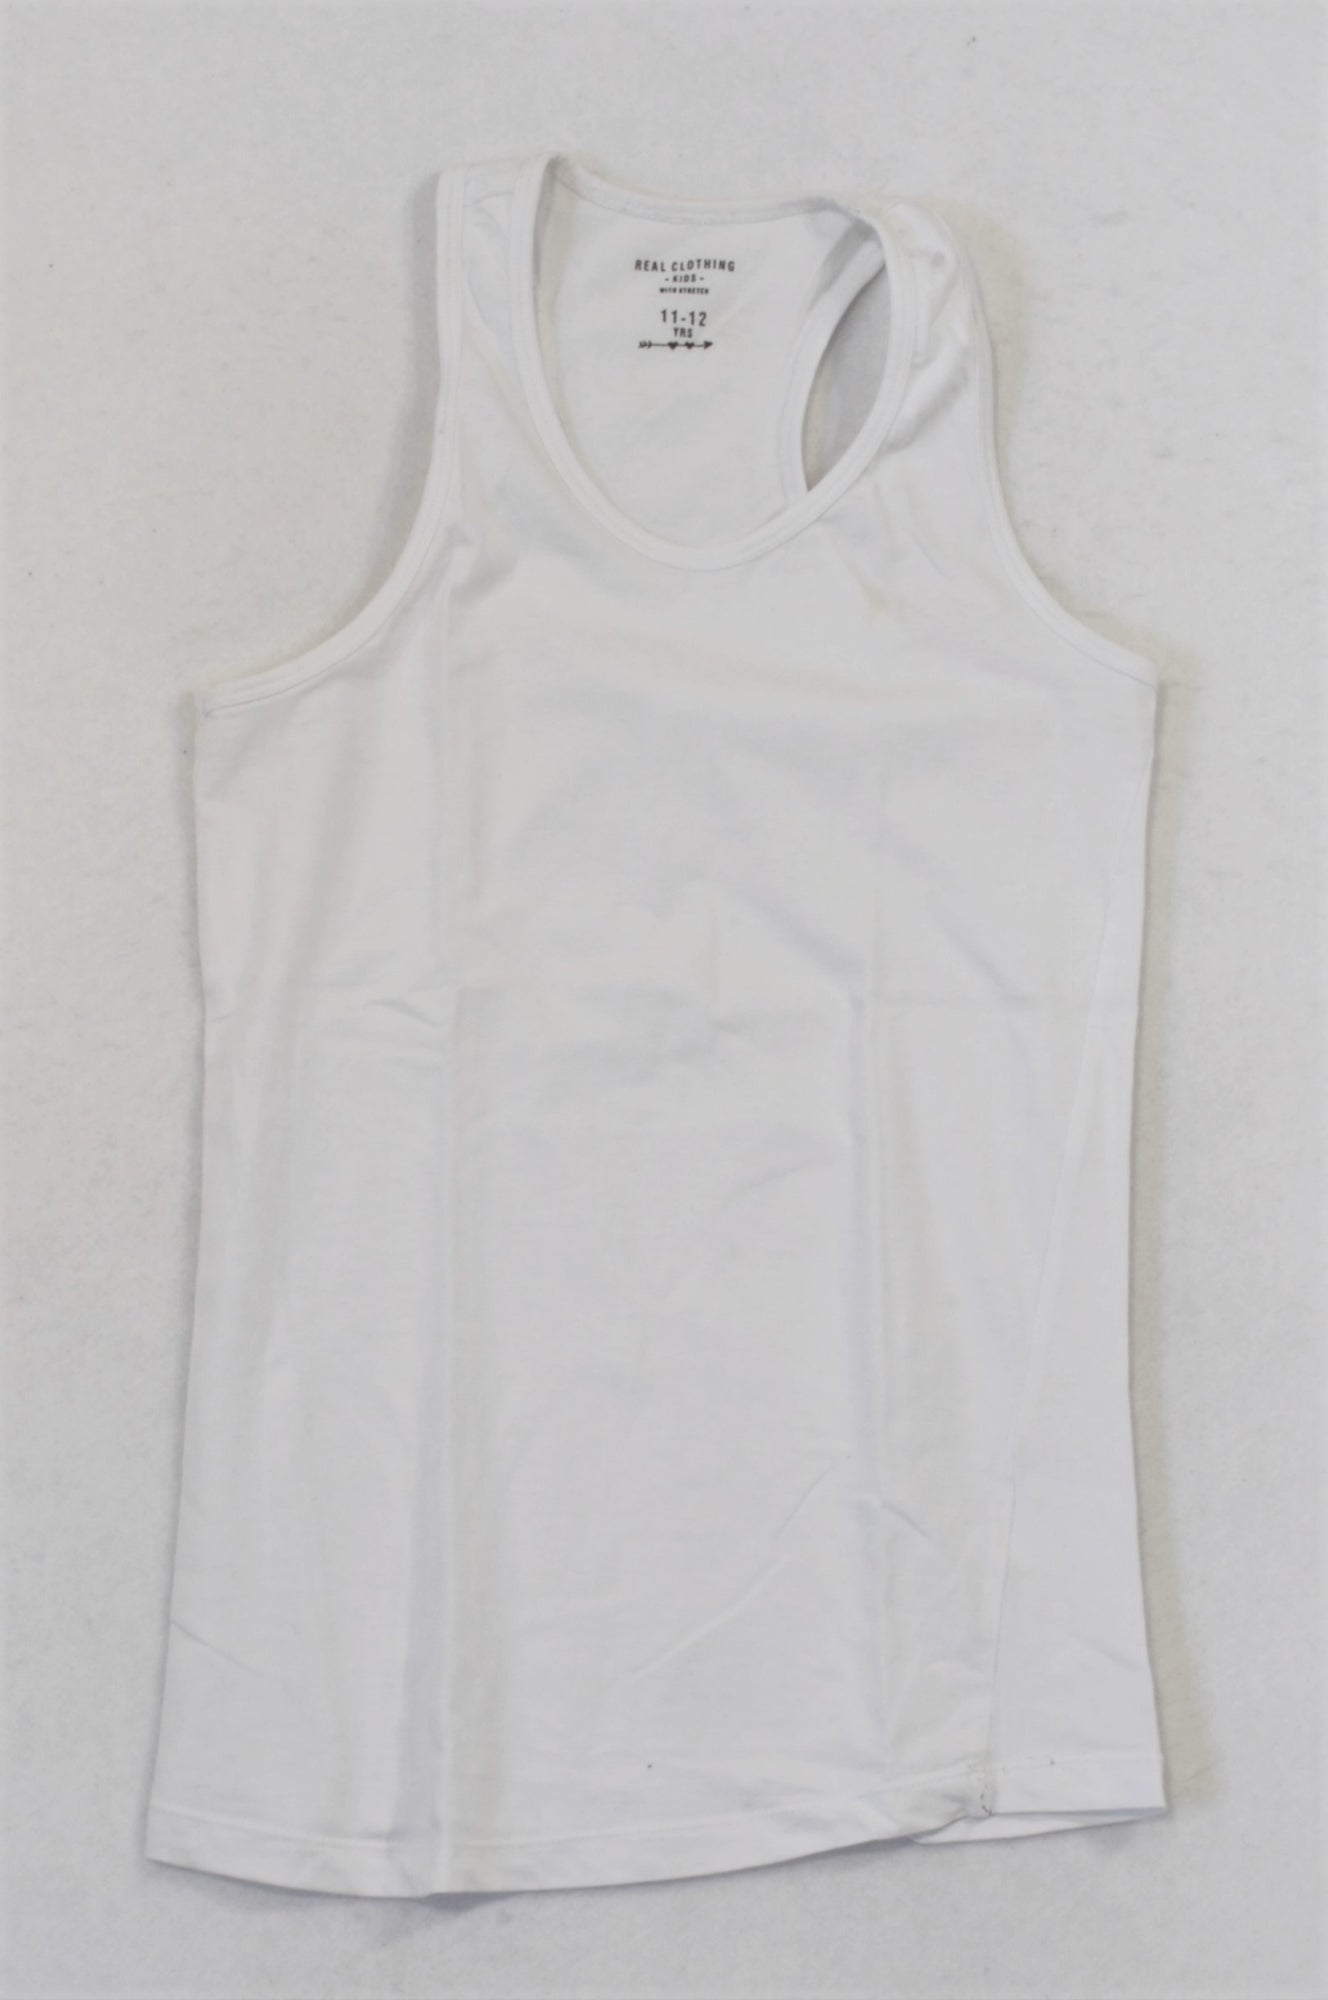 Pick 'n Pay Basic White Sporty Tank Top Girls 11-12 years